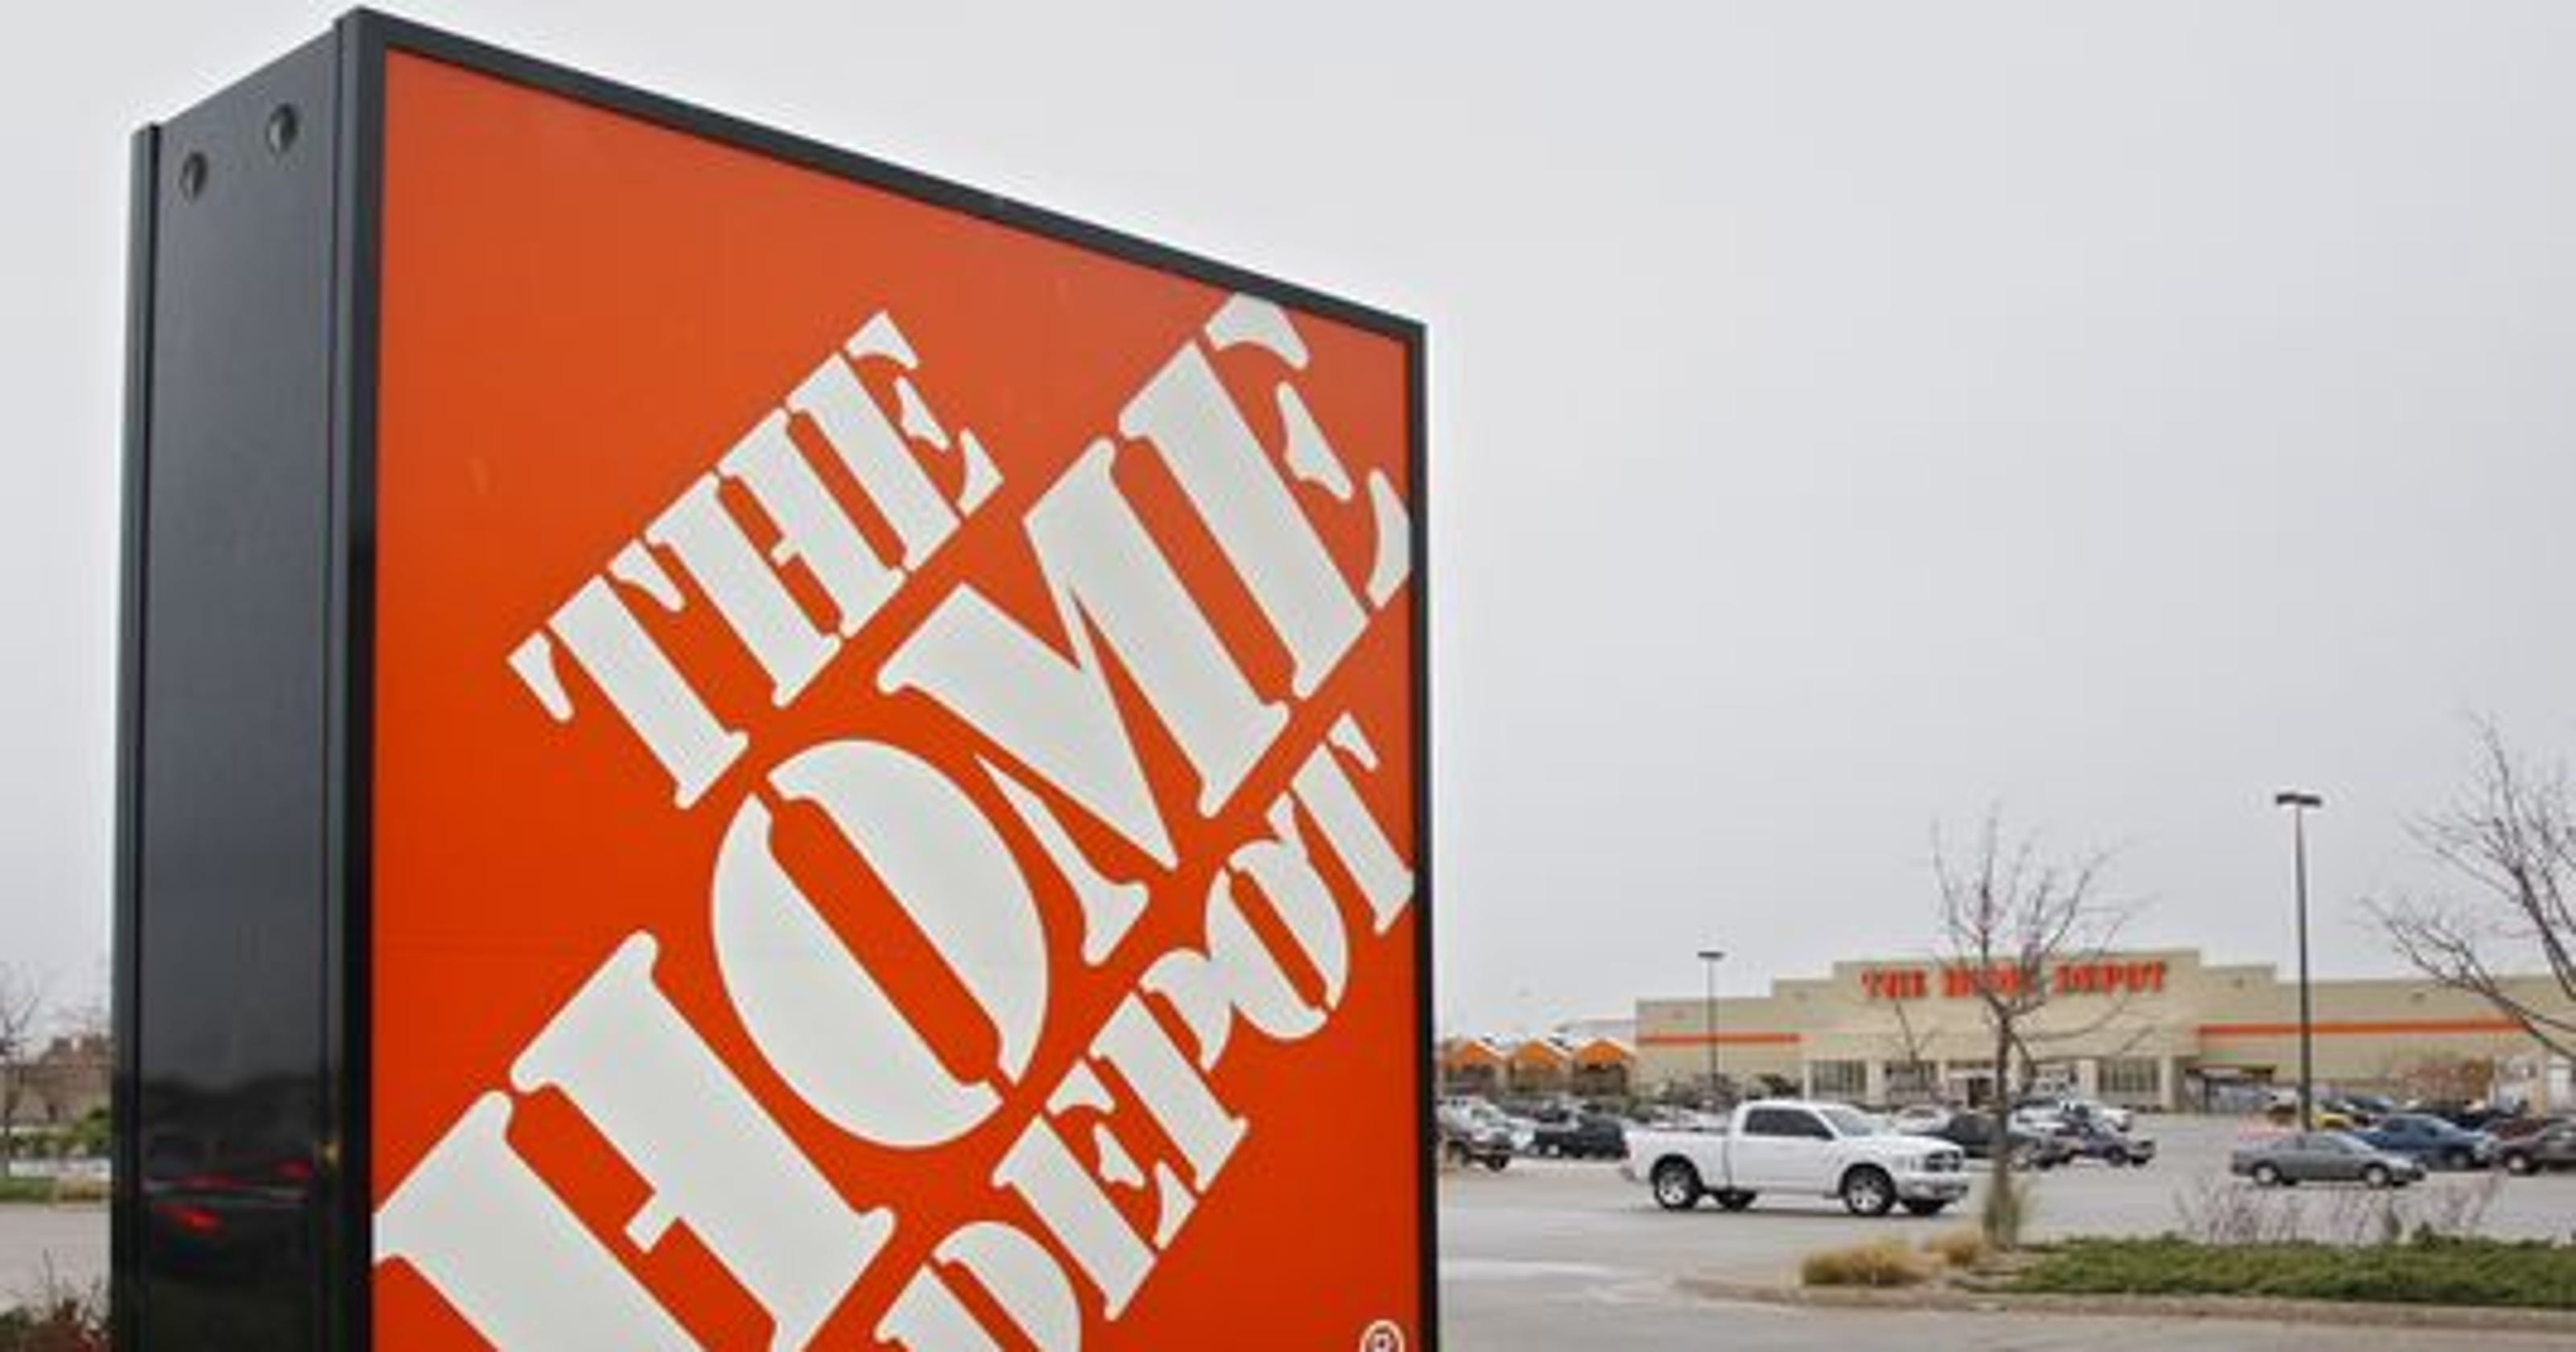 S D Attorney General Issues Home Depot Warning